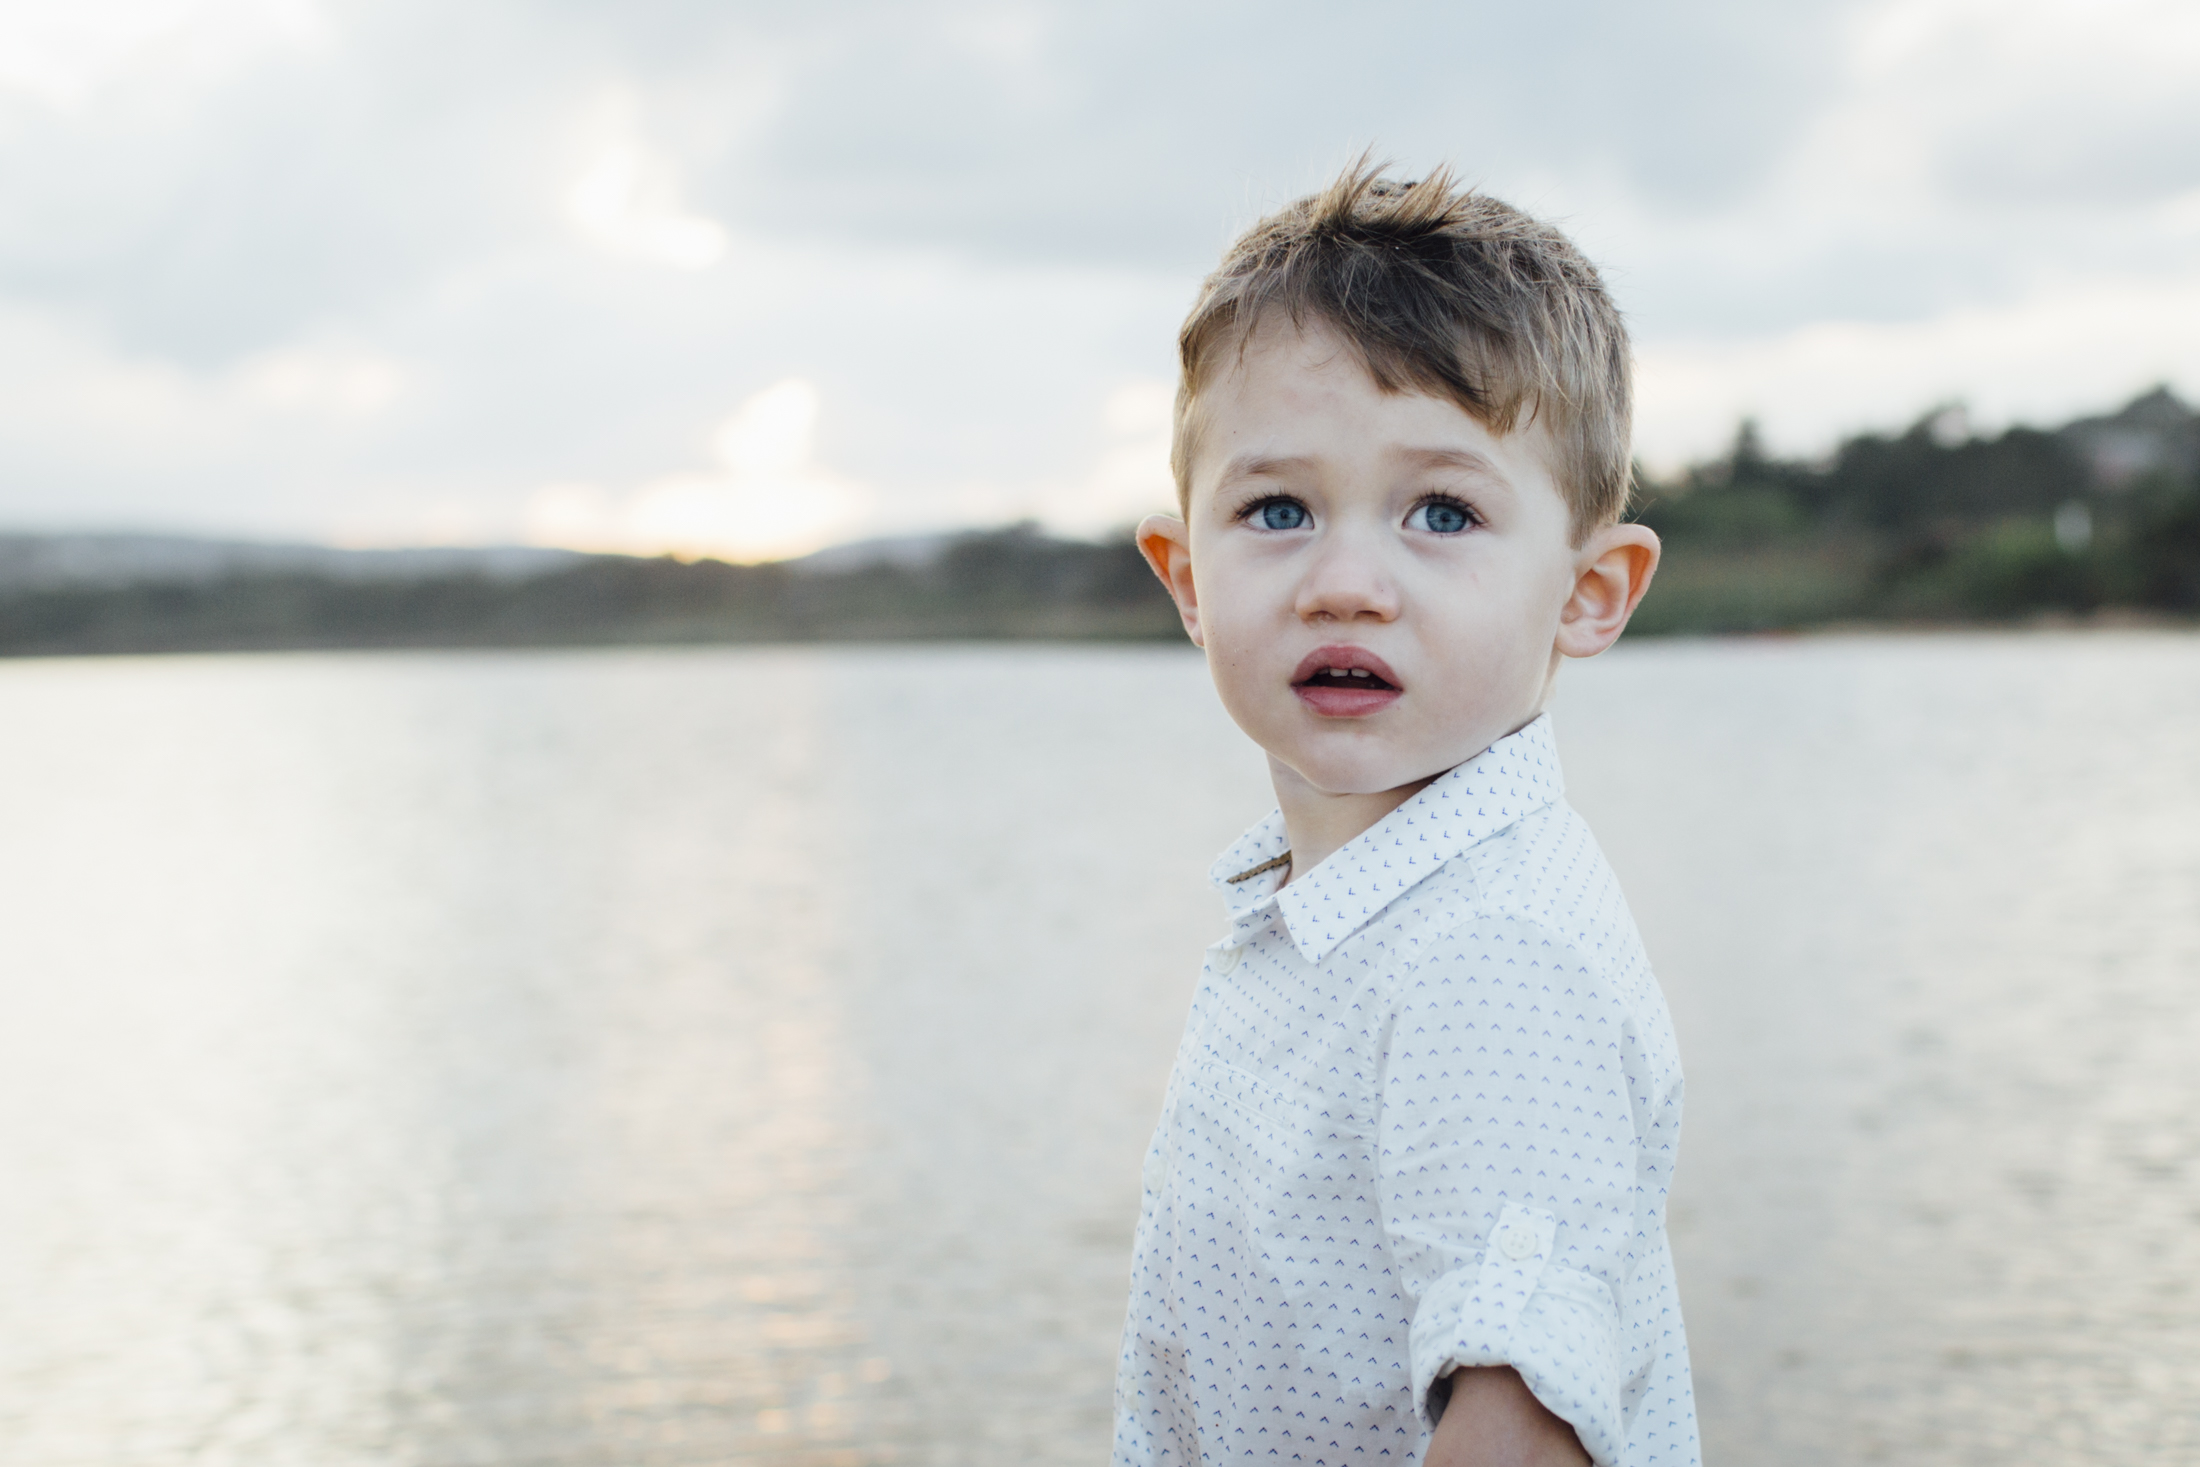 sheridan_nilsson_northern_beaches_family_lifestyle_photographer-3249.jpg